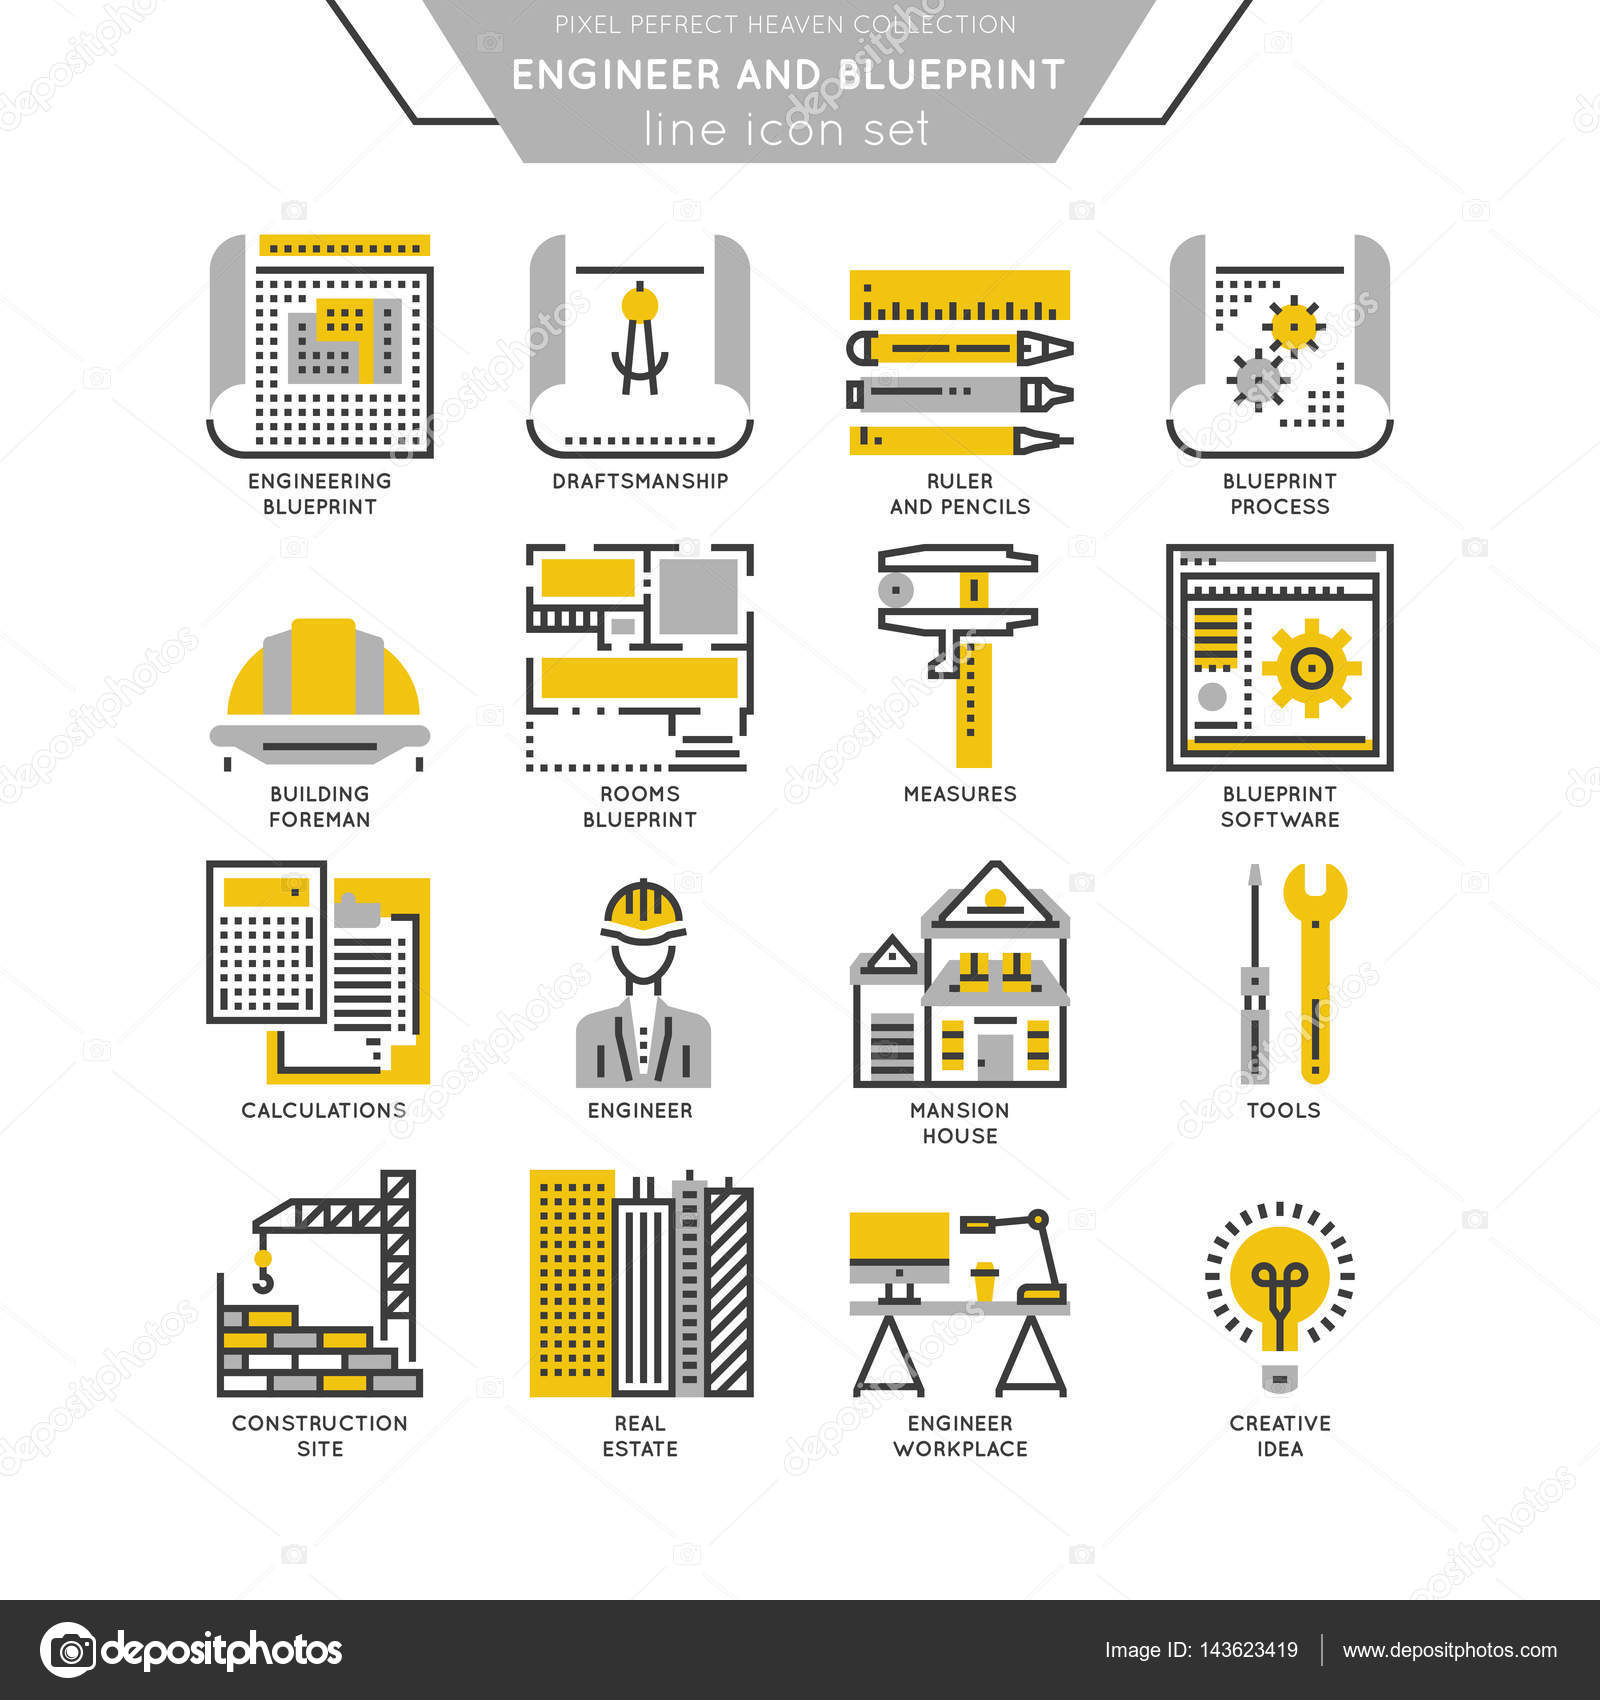 Blueprint and engineer line icon set stock vector blueprint and engineer line icon set stock vector malvernweather Gallery